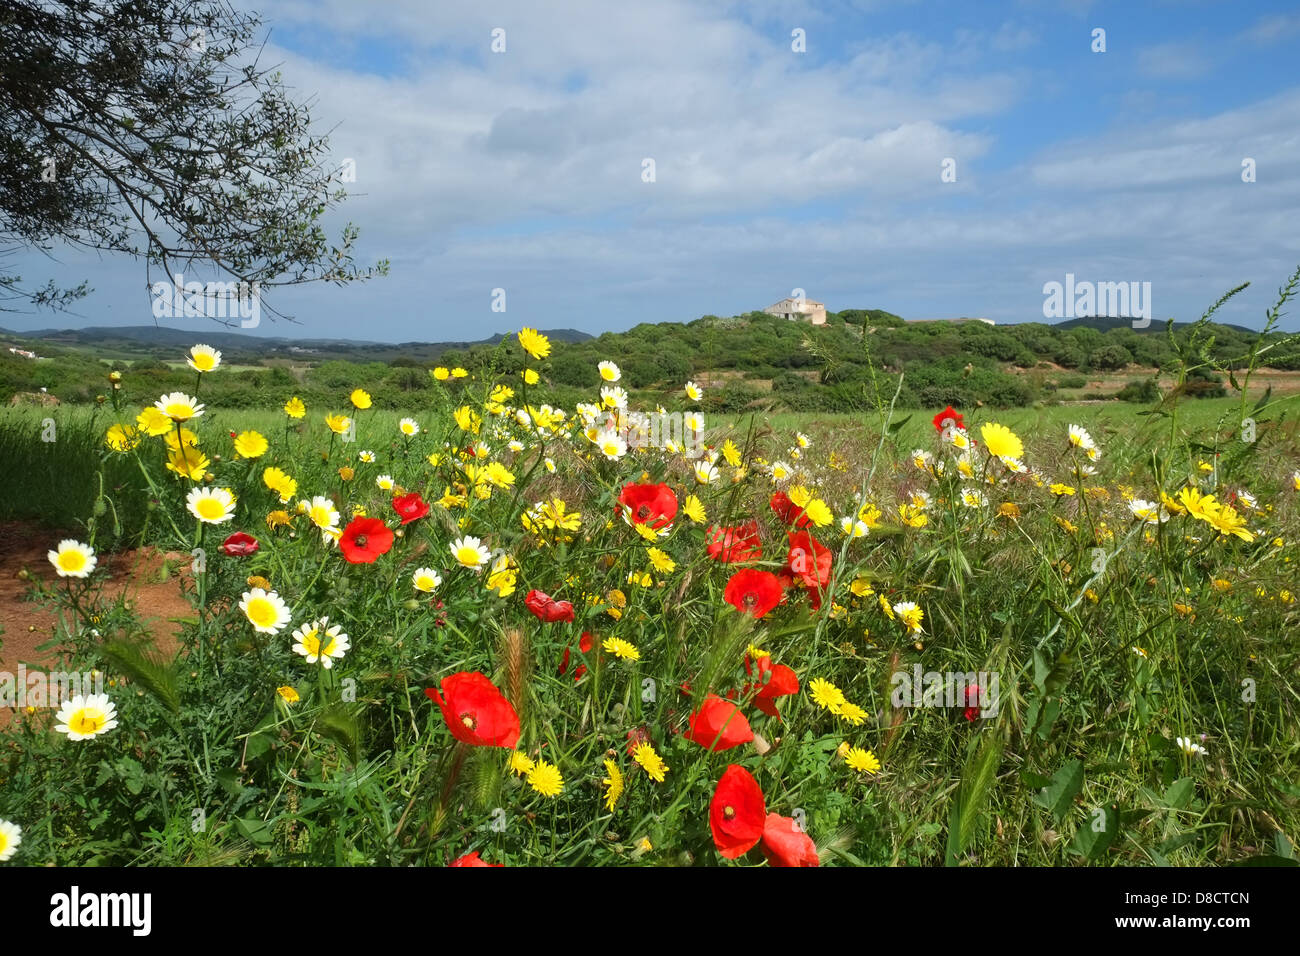 mohn und blumen auf einer wiese in menorca im fr hjahr stockfoto bild 56830949 alamy. Black Bedroom Furniture Sets. Home Design Ideas